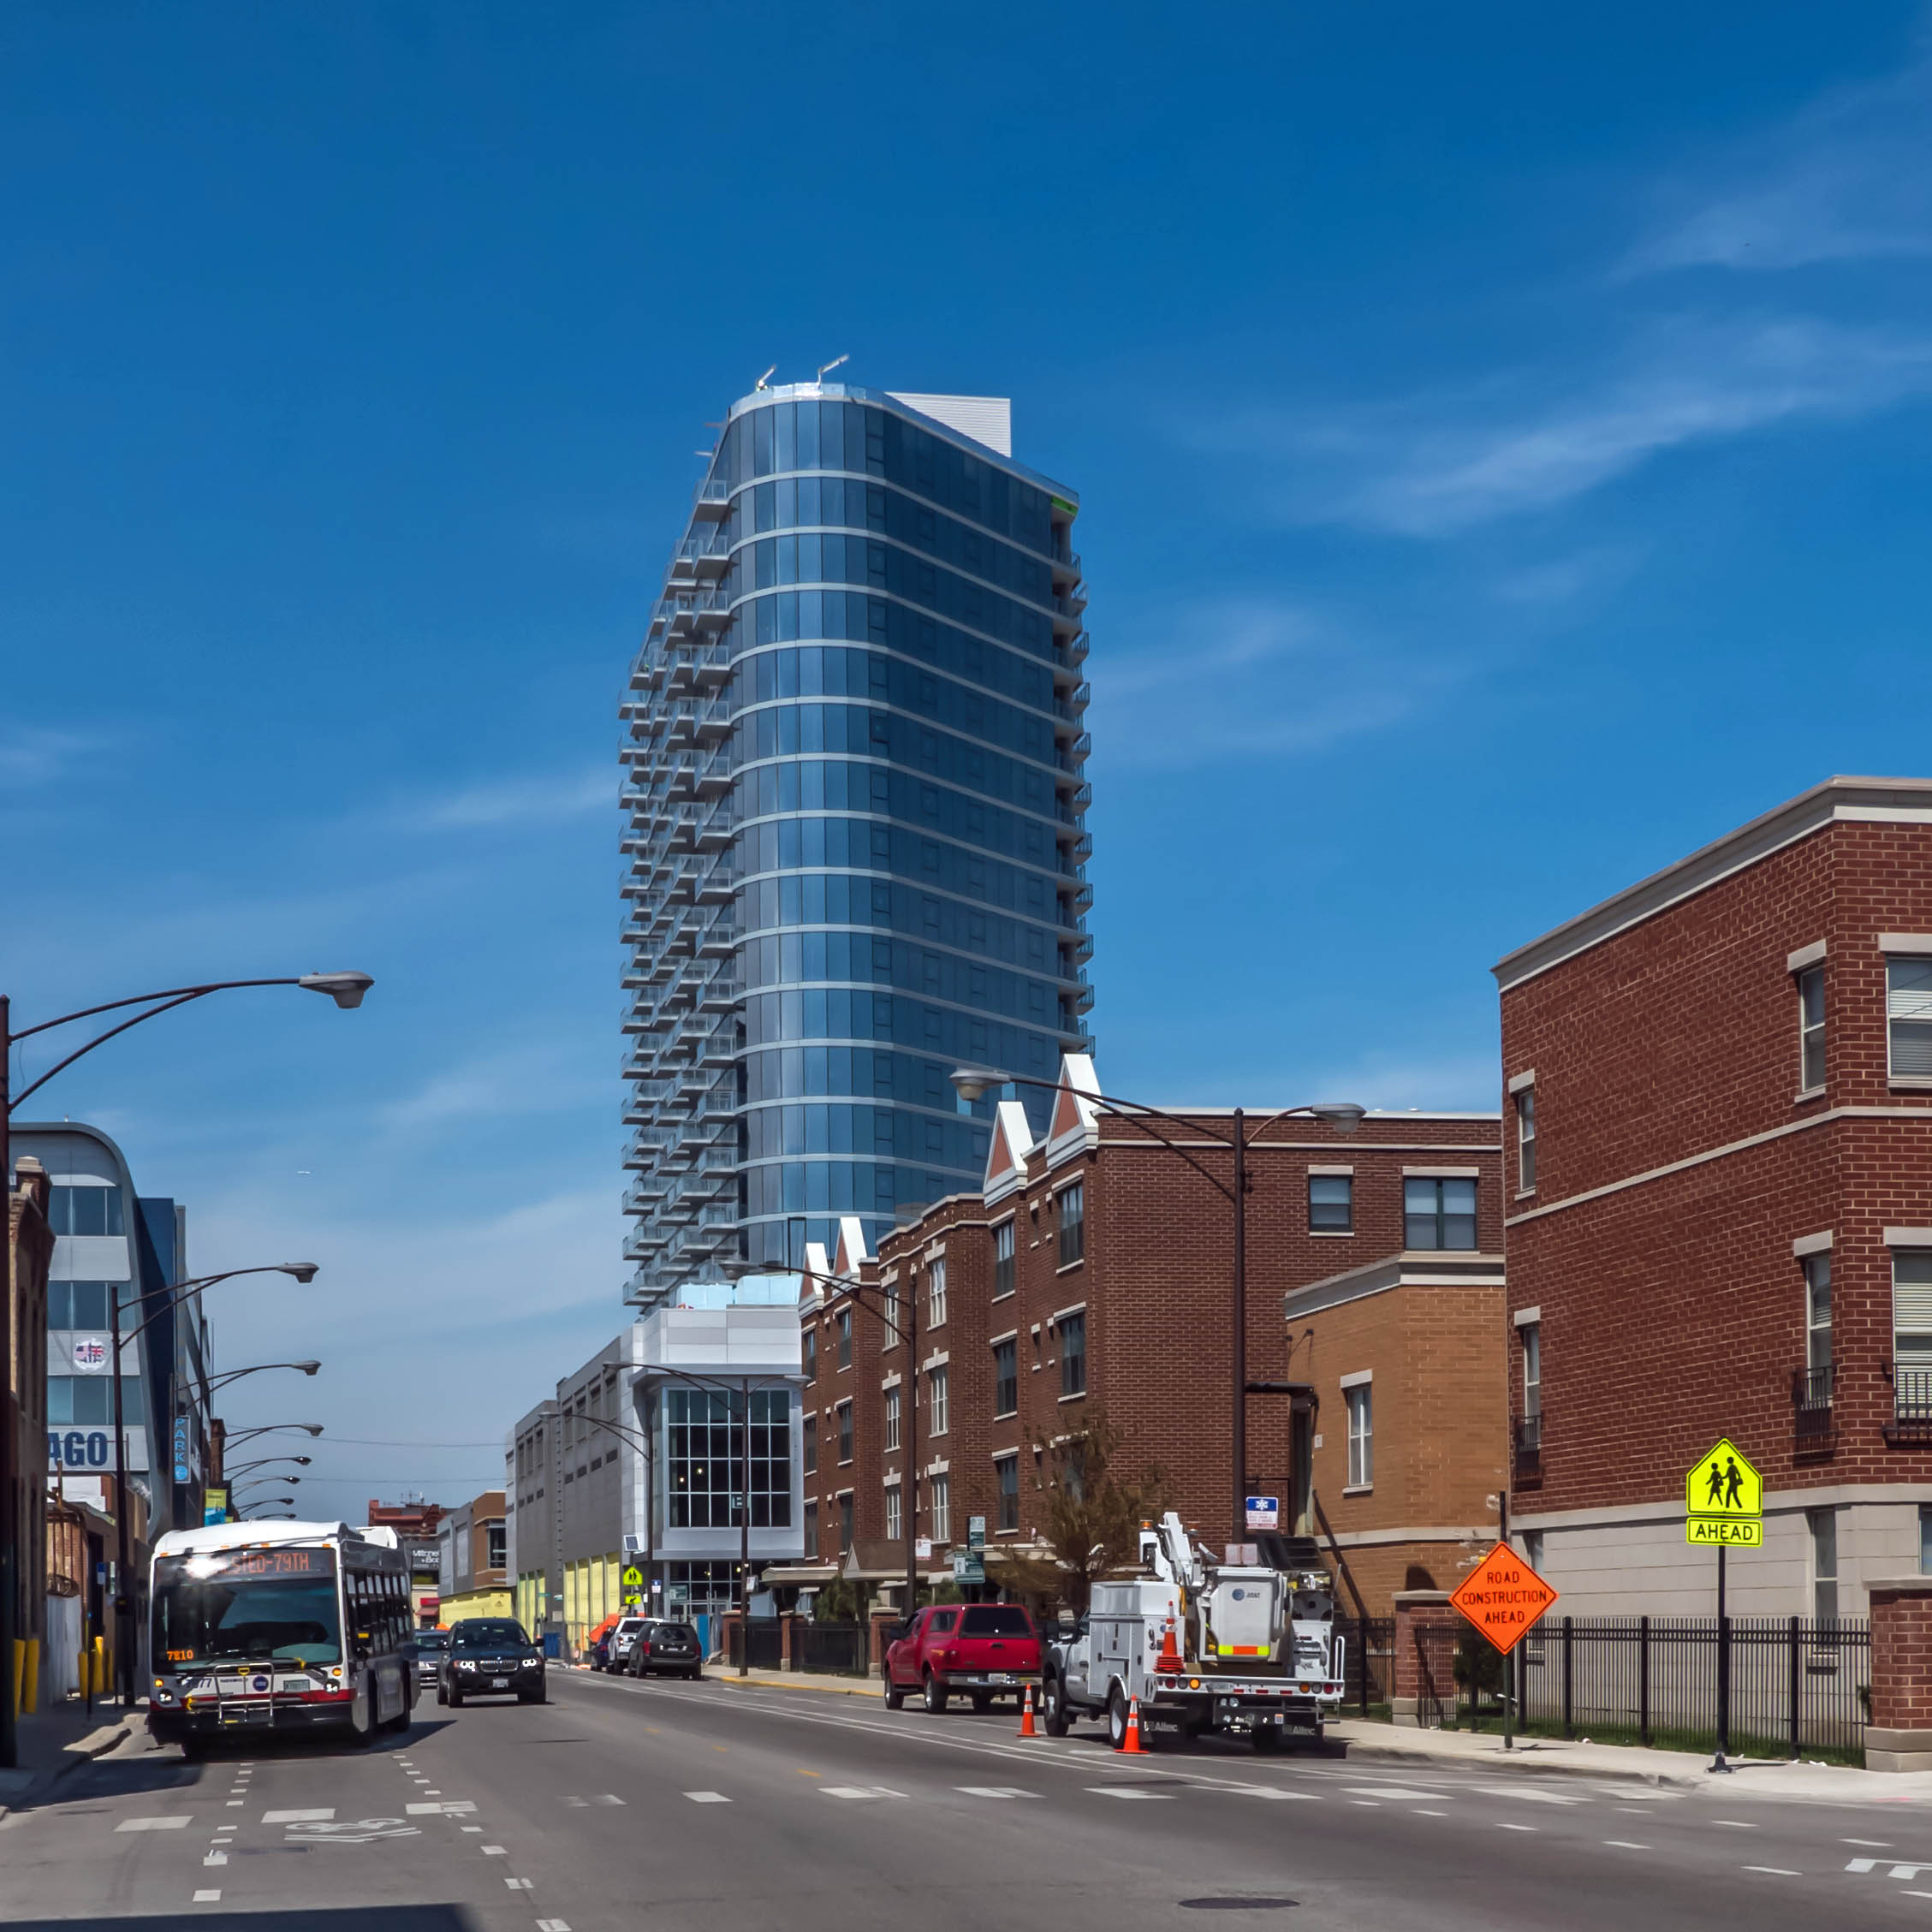 New City Rentals: NewCity Apartments, 1457 N Halsted St, Near North Side